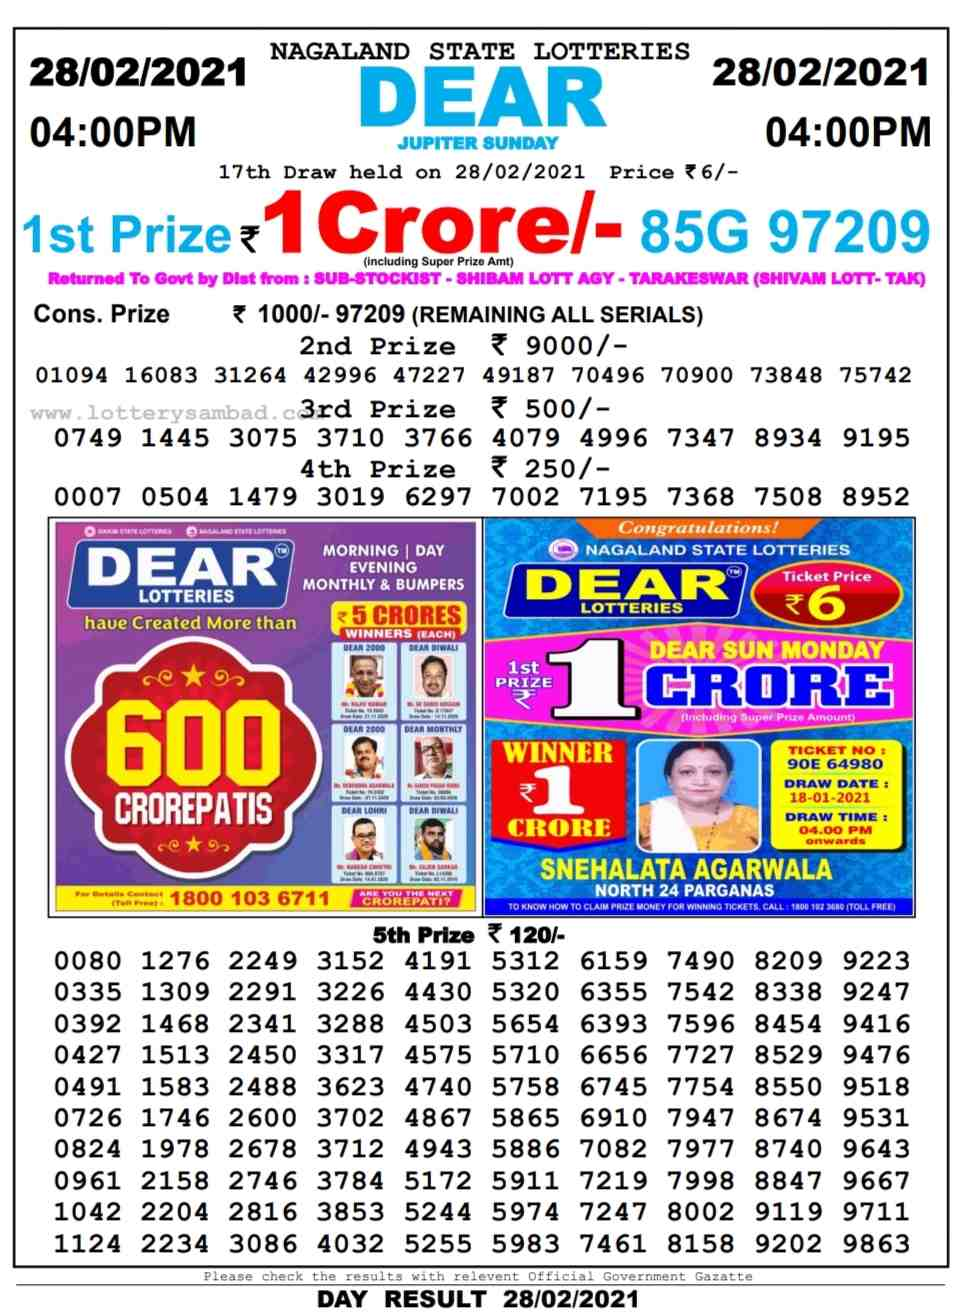 Sikkim Sambad lottery result at 4 pm on 02.28.2021